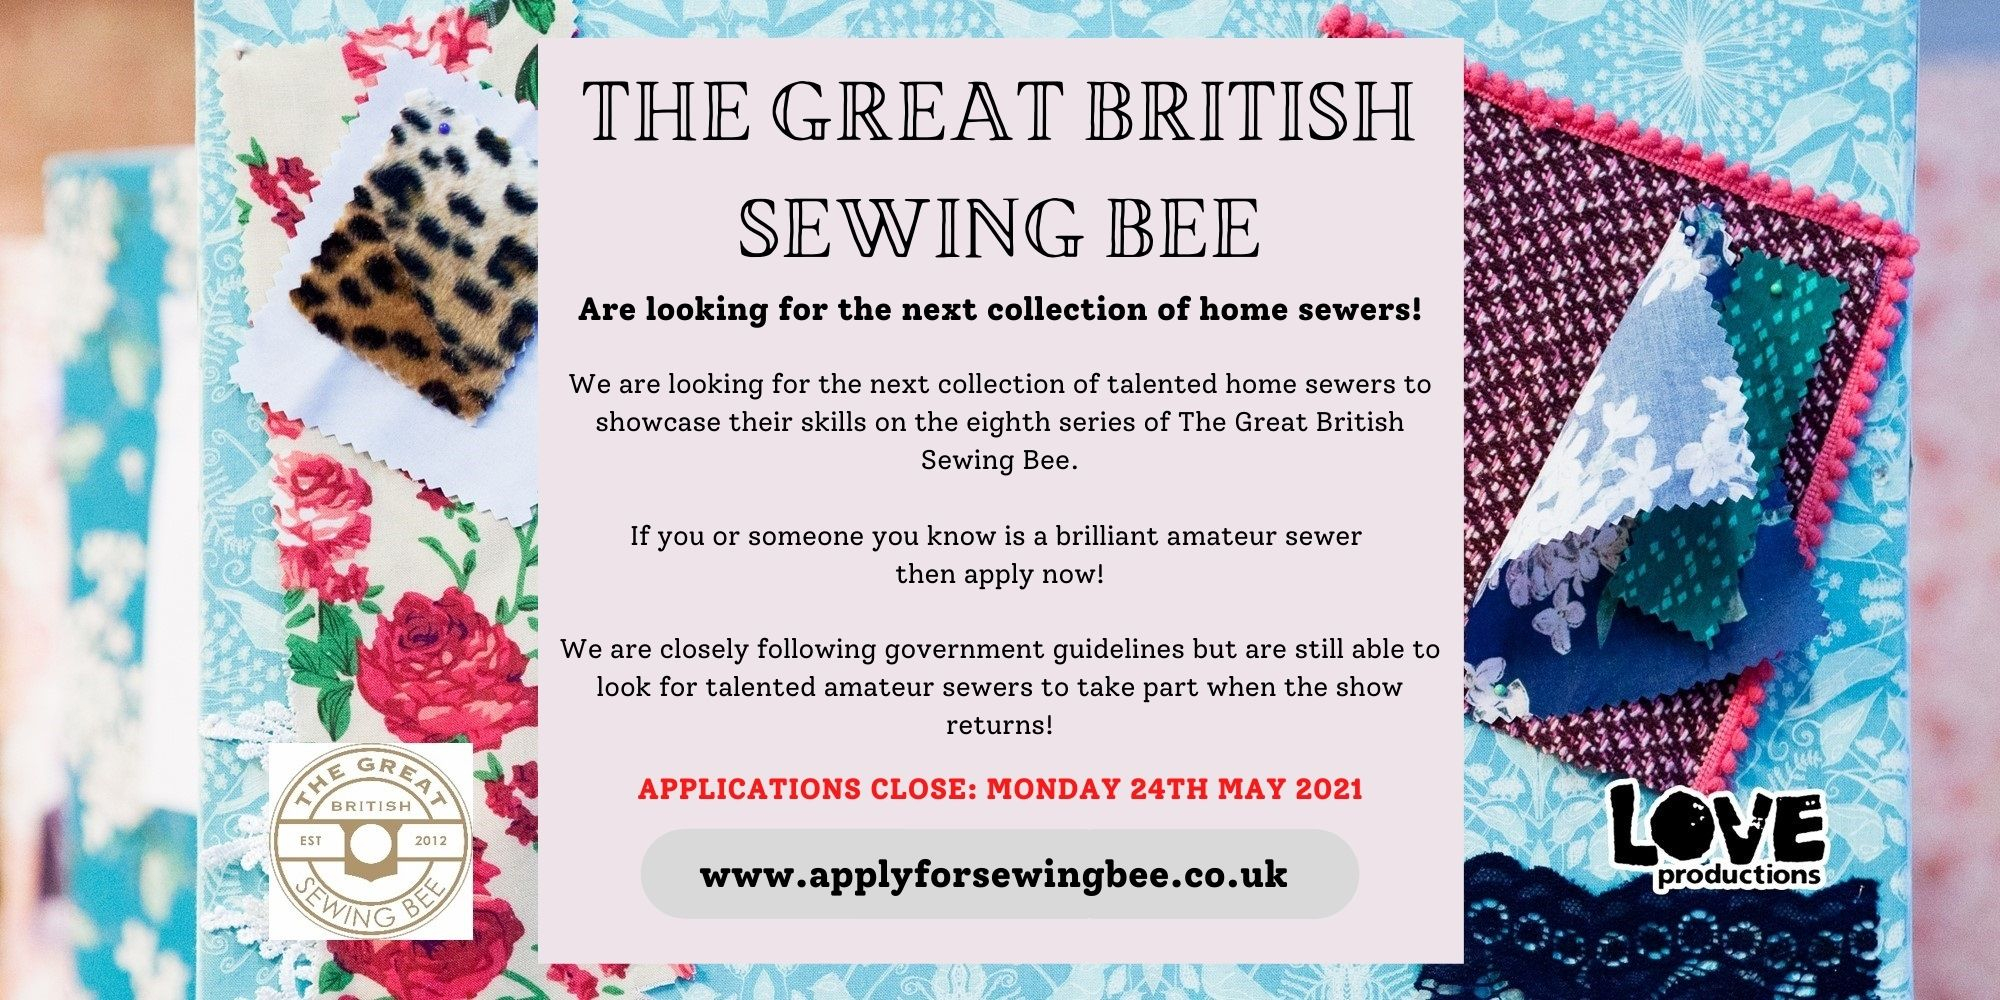 flyer for the great british sewing bee containing the same information as listed above